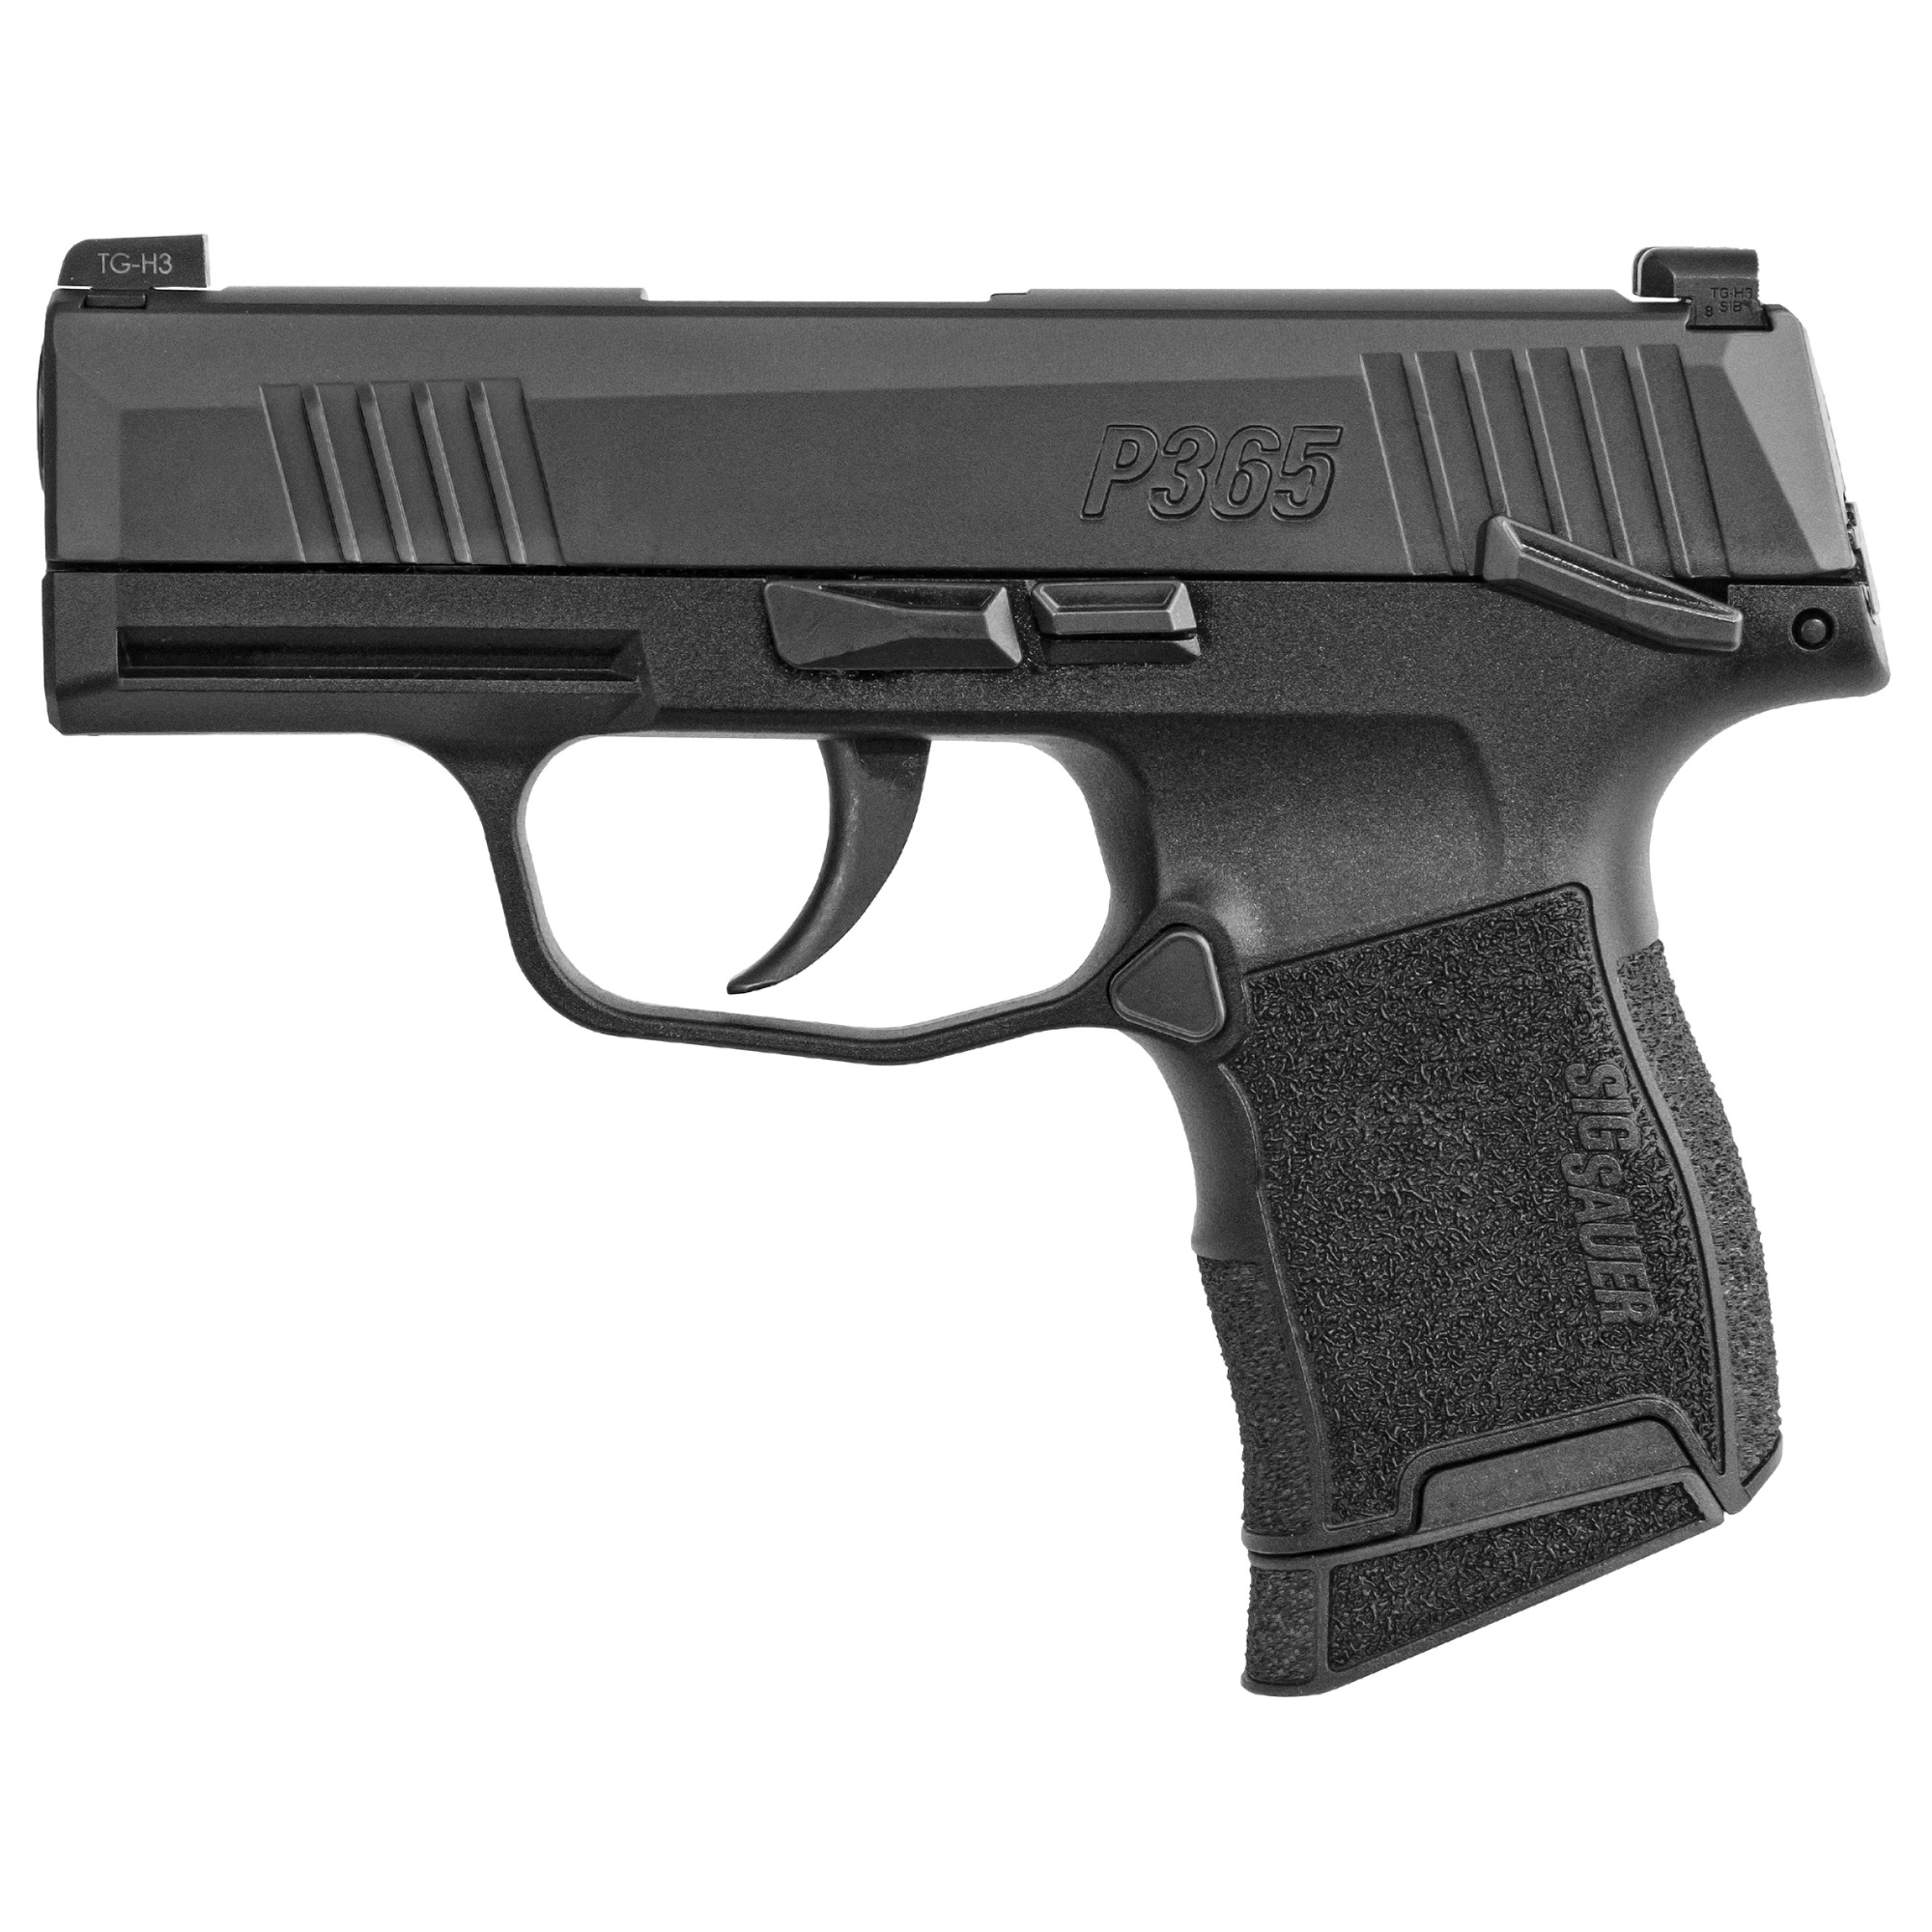 Sig Sauer P365 w/safety 9mm, Night Sights, Nitron, Micro-Compact - IOP